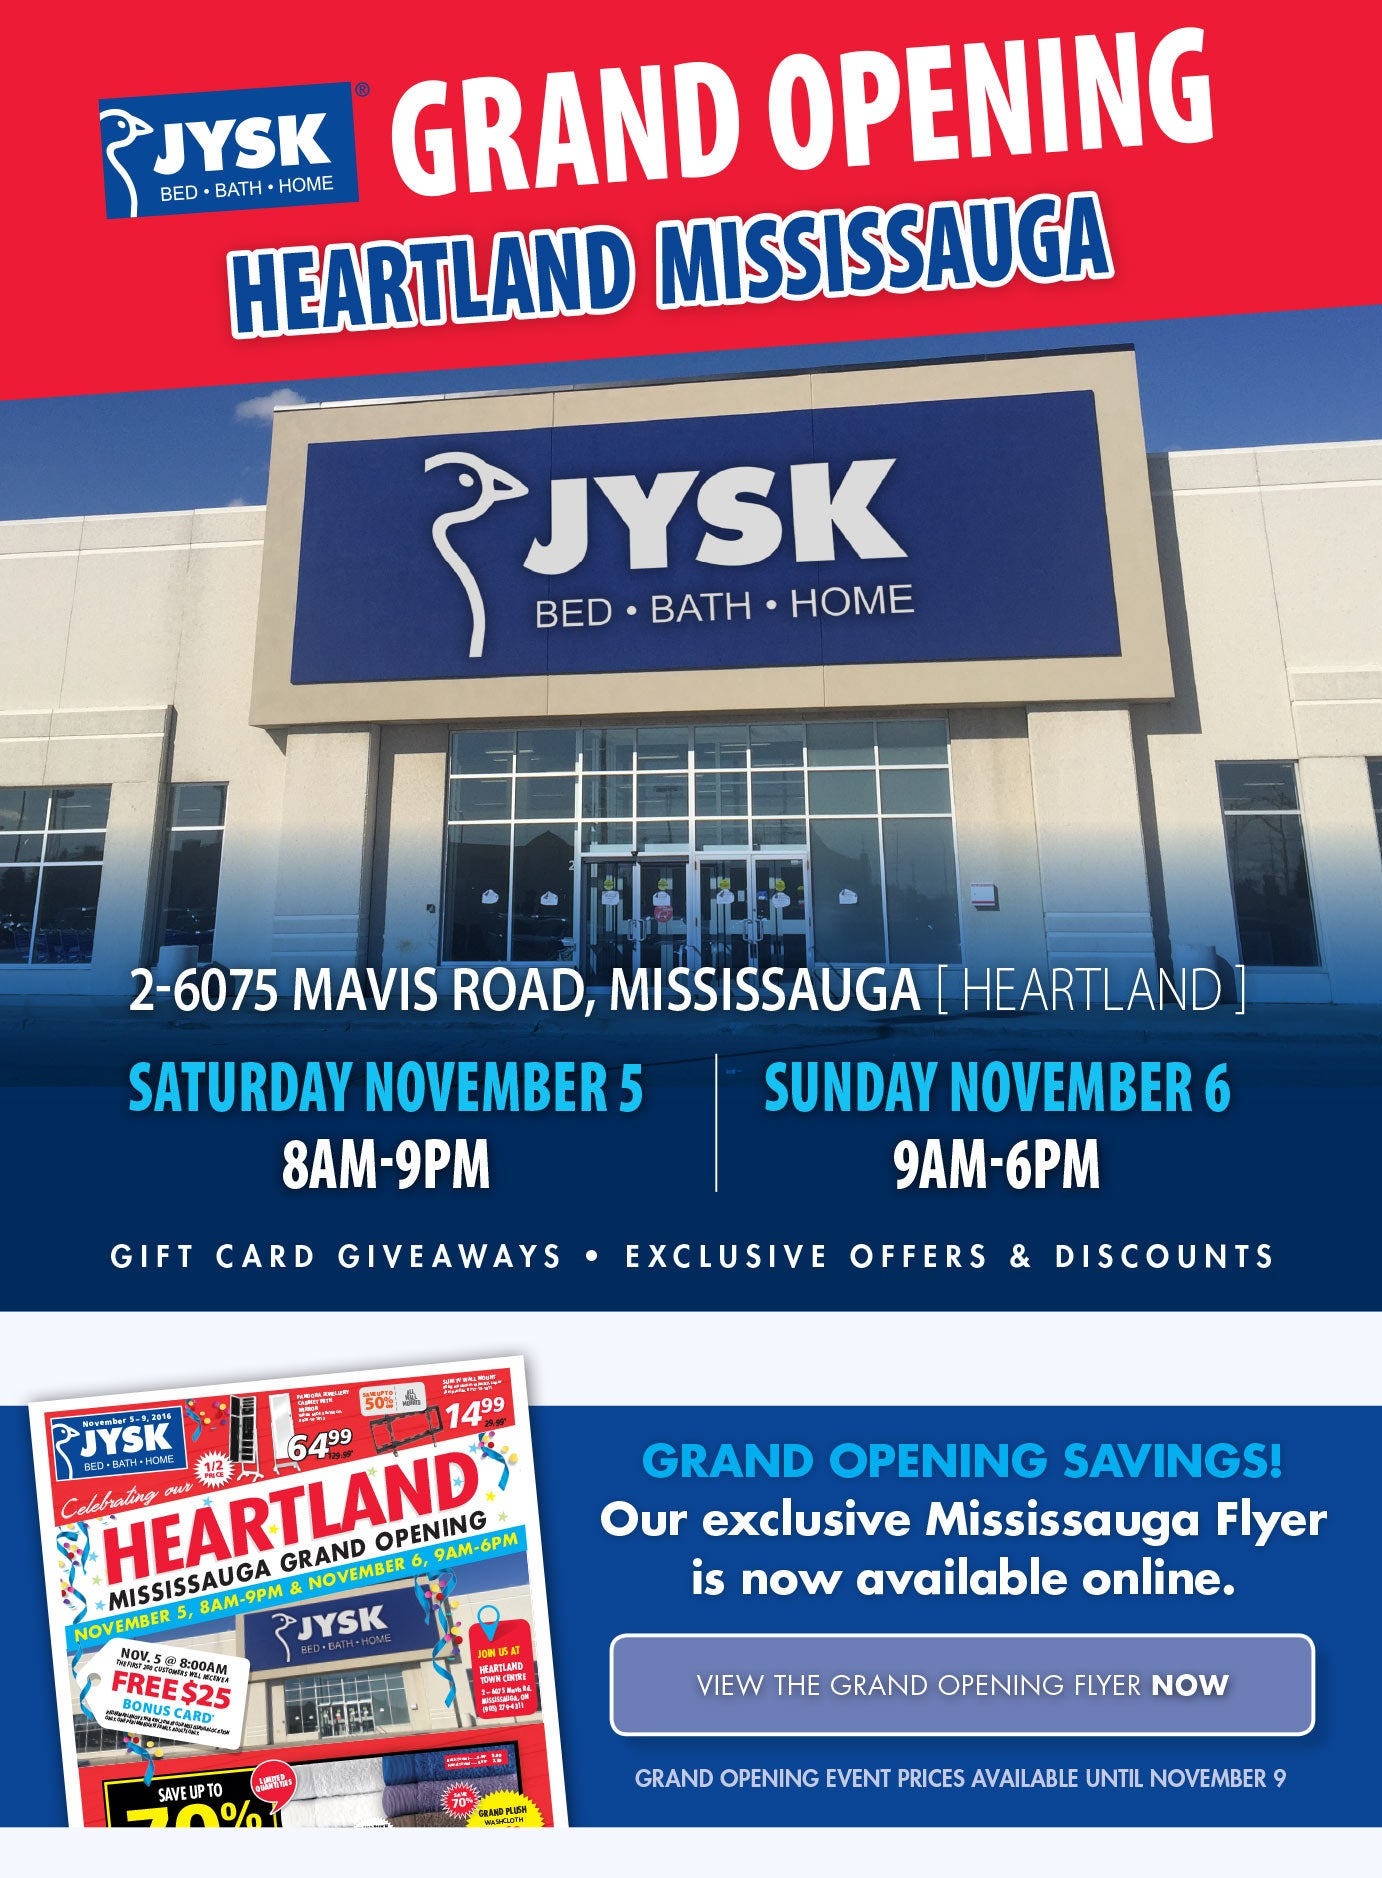 Heartland Mississauga Grand Opening